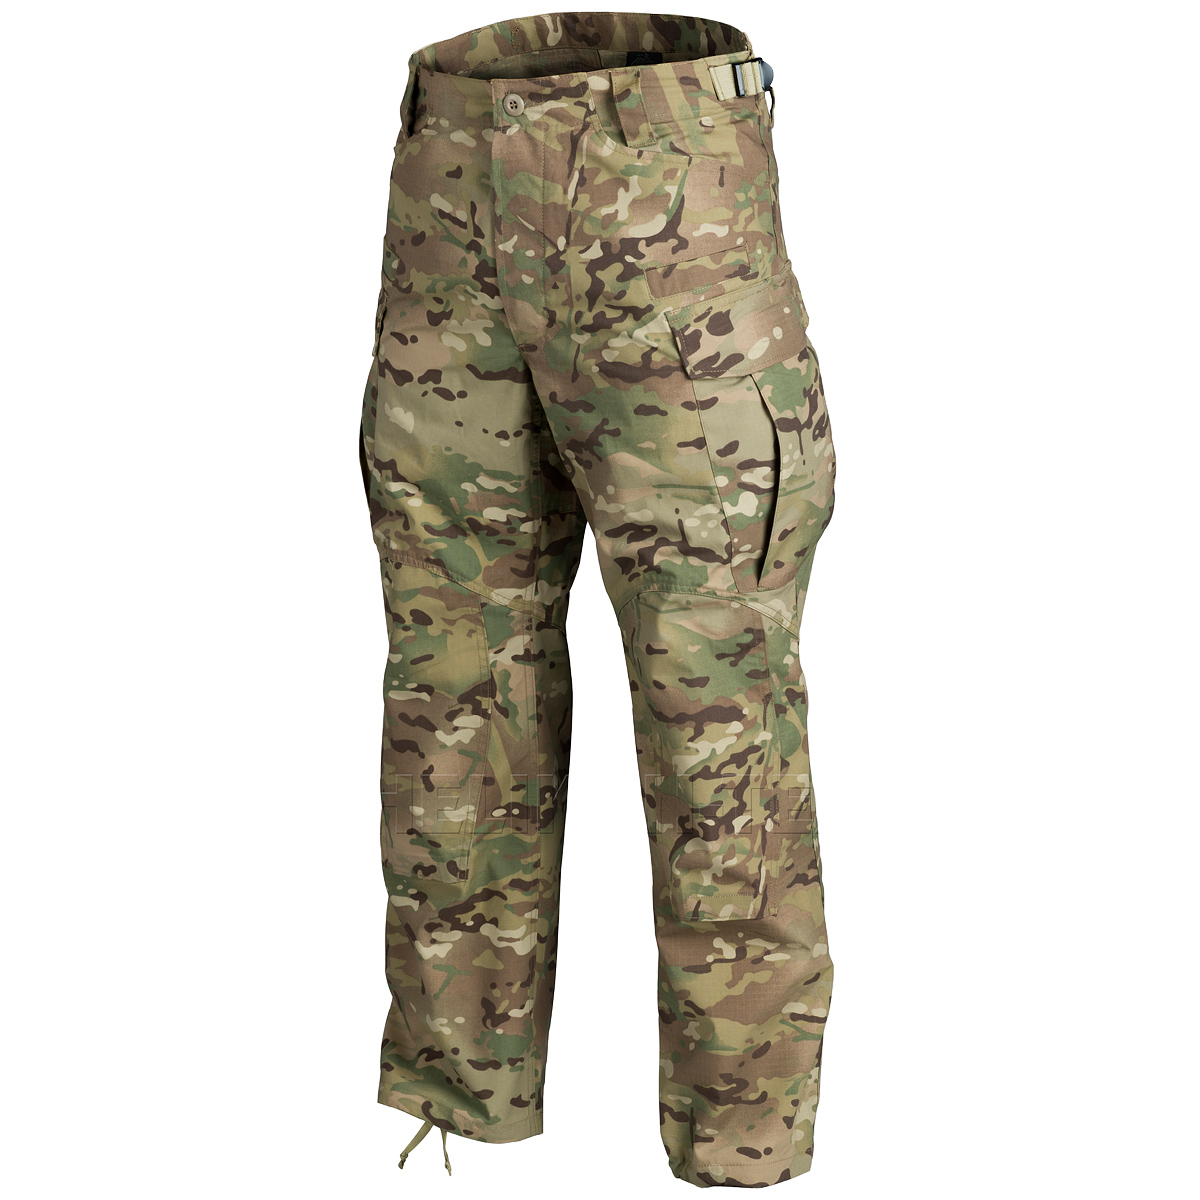 HELIKON-SFU-COMBAT-TROUSERS-MENS-UNIFORM-PANTS-AIRSOFT-ARMY-CAMOGROM-CAMO-XS-XXL